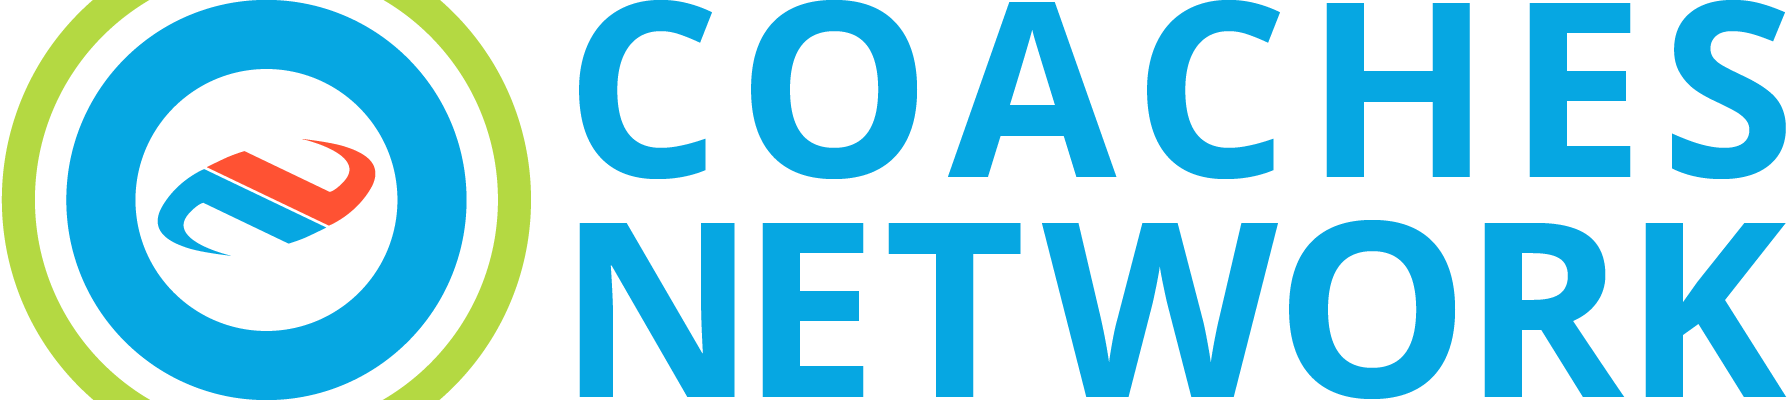 Venice Nutrition Coaches Network Logo